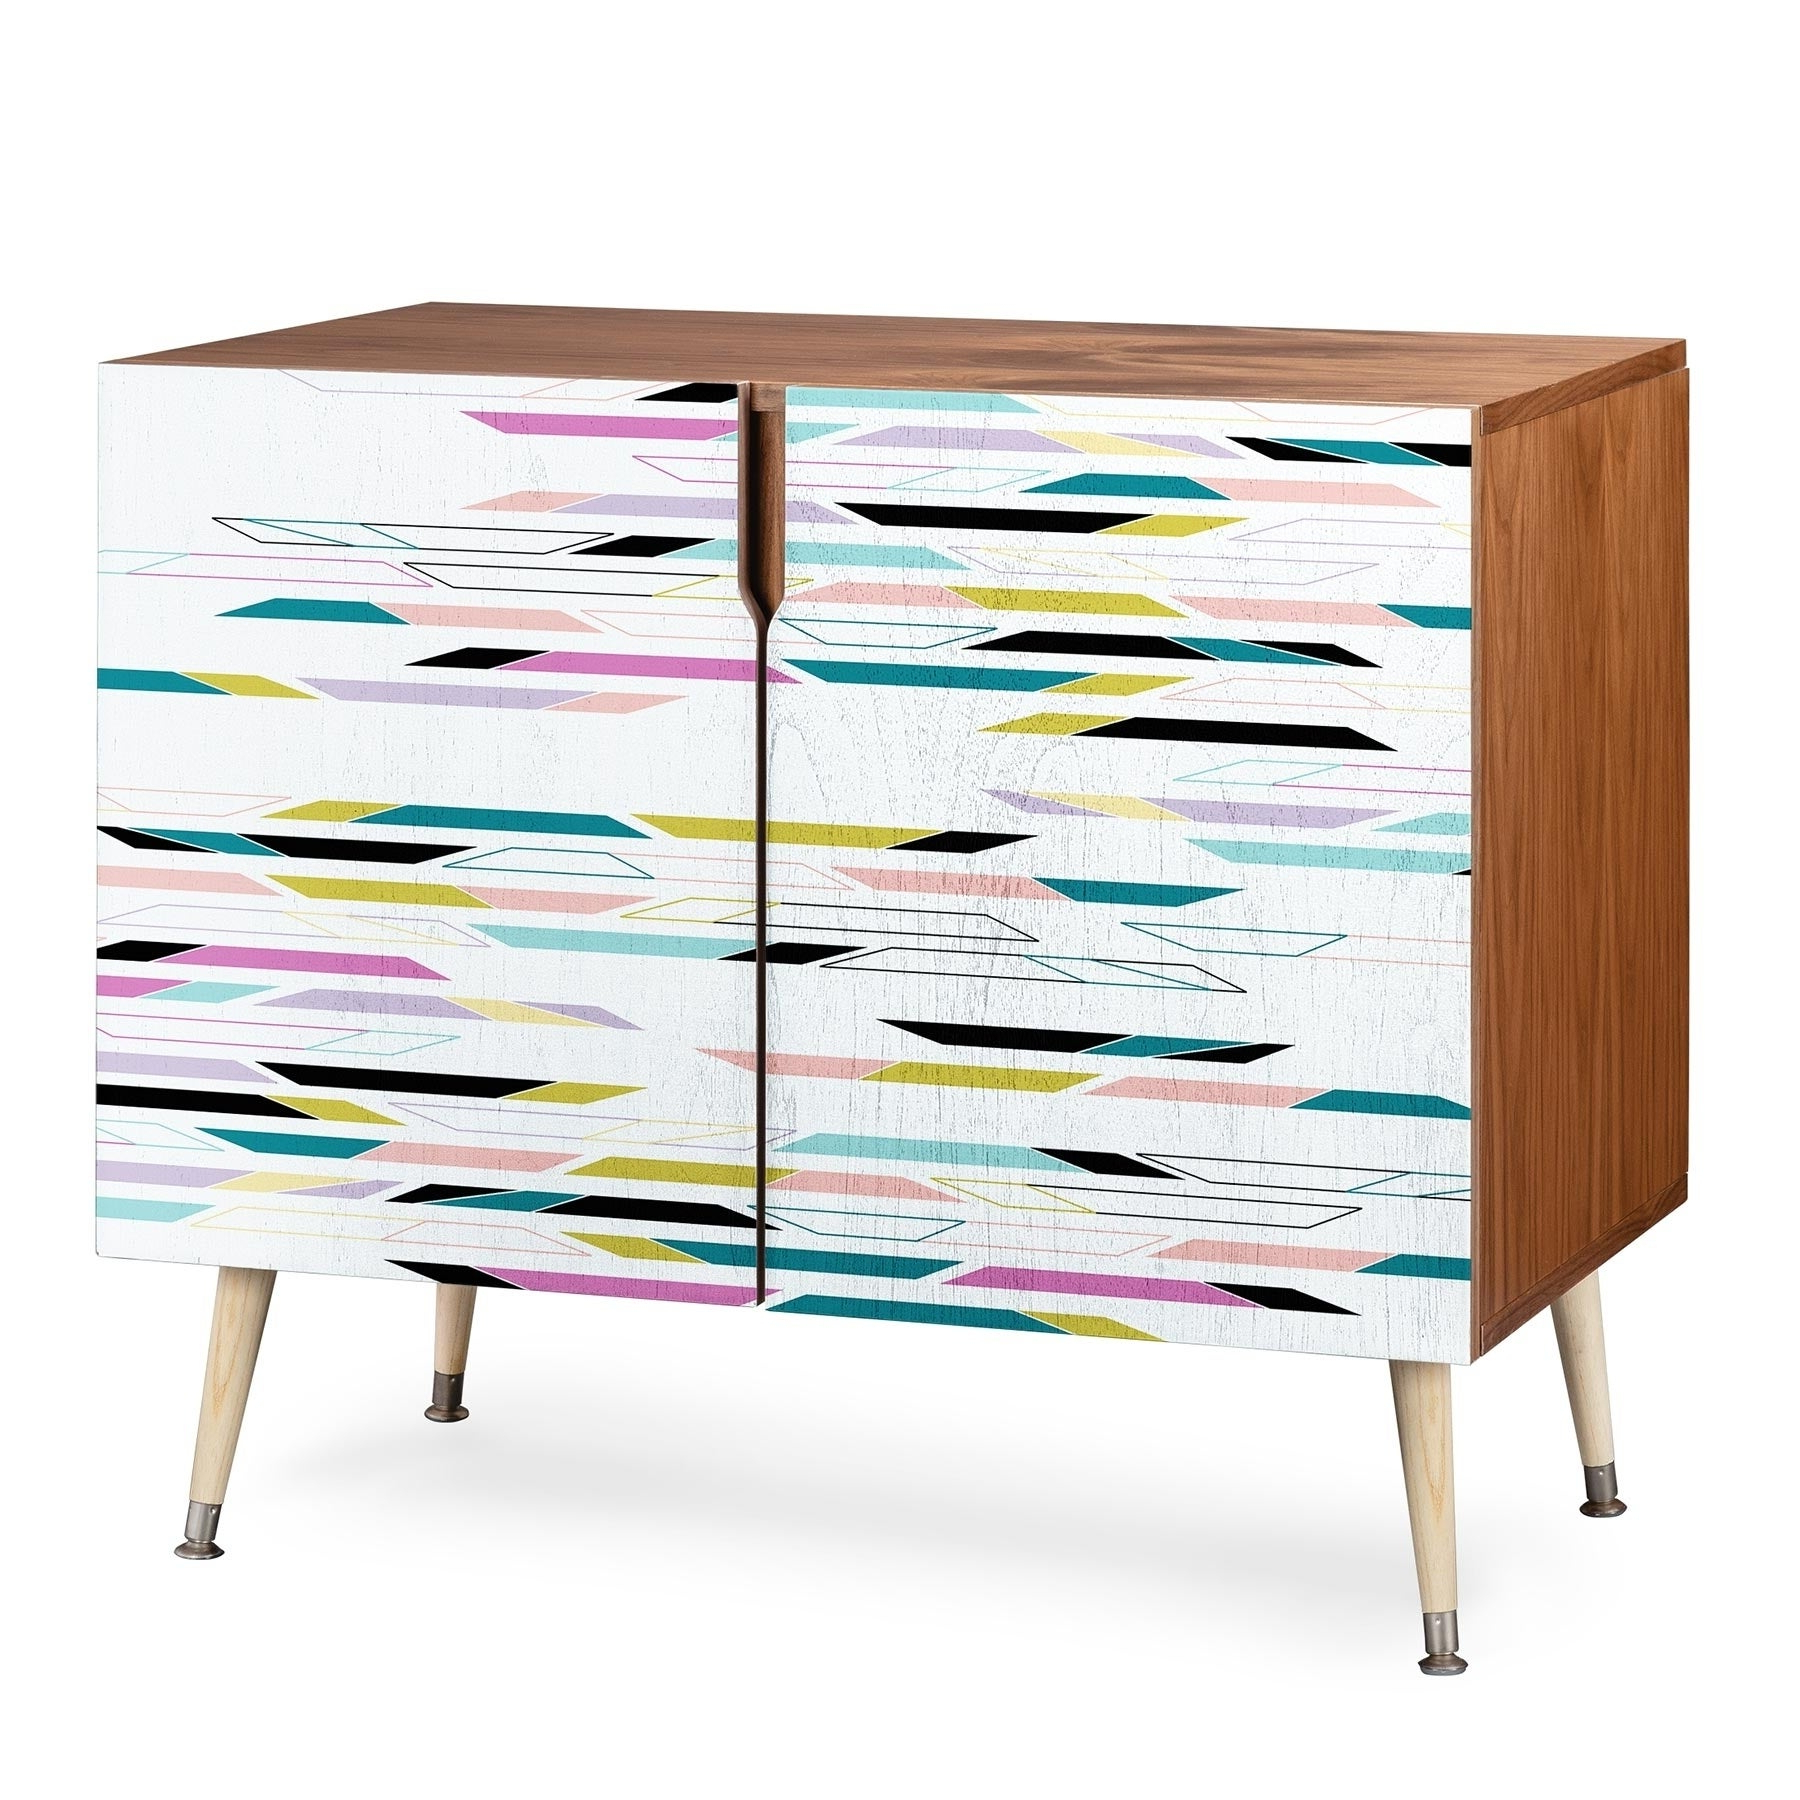 Deny Designs Multi Colored Geometric Shapes Credenza (Birch Or Walnut, 3 Leg Options) Regarding Geometric Shapes Credenzas (View 8 of 20)